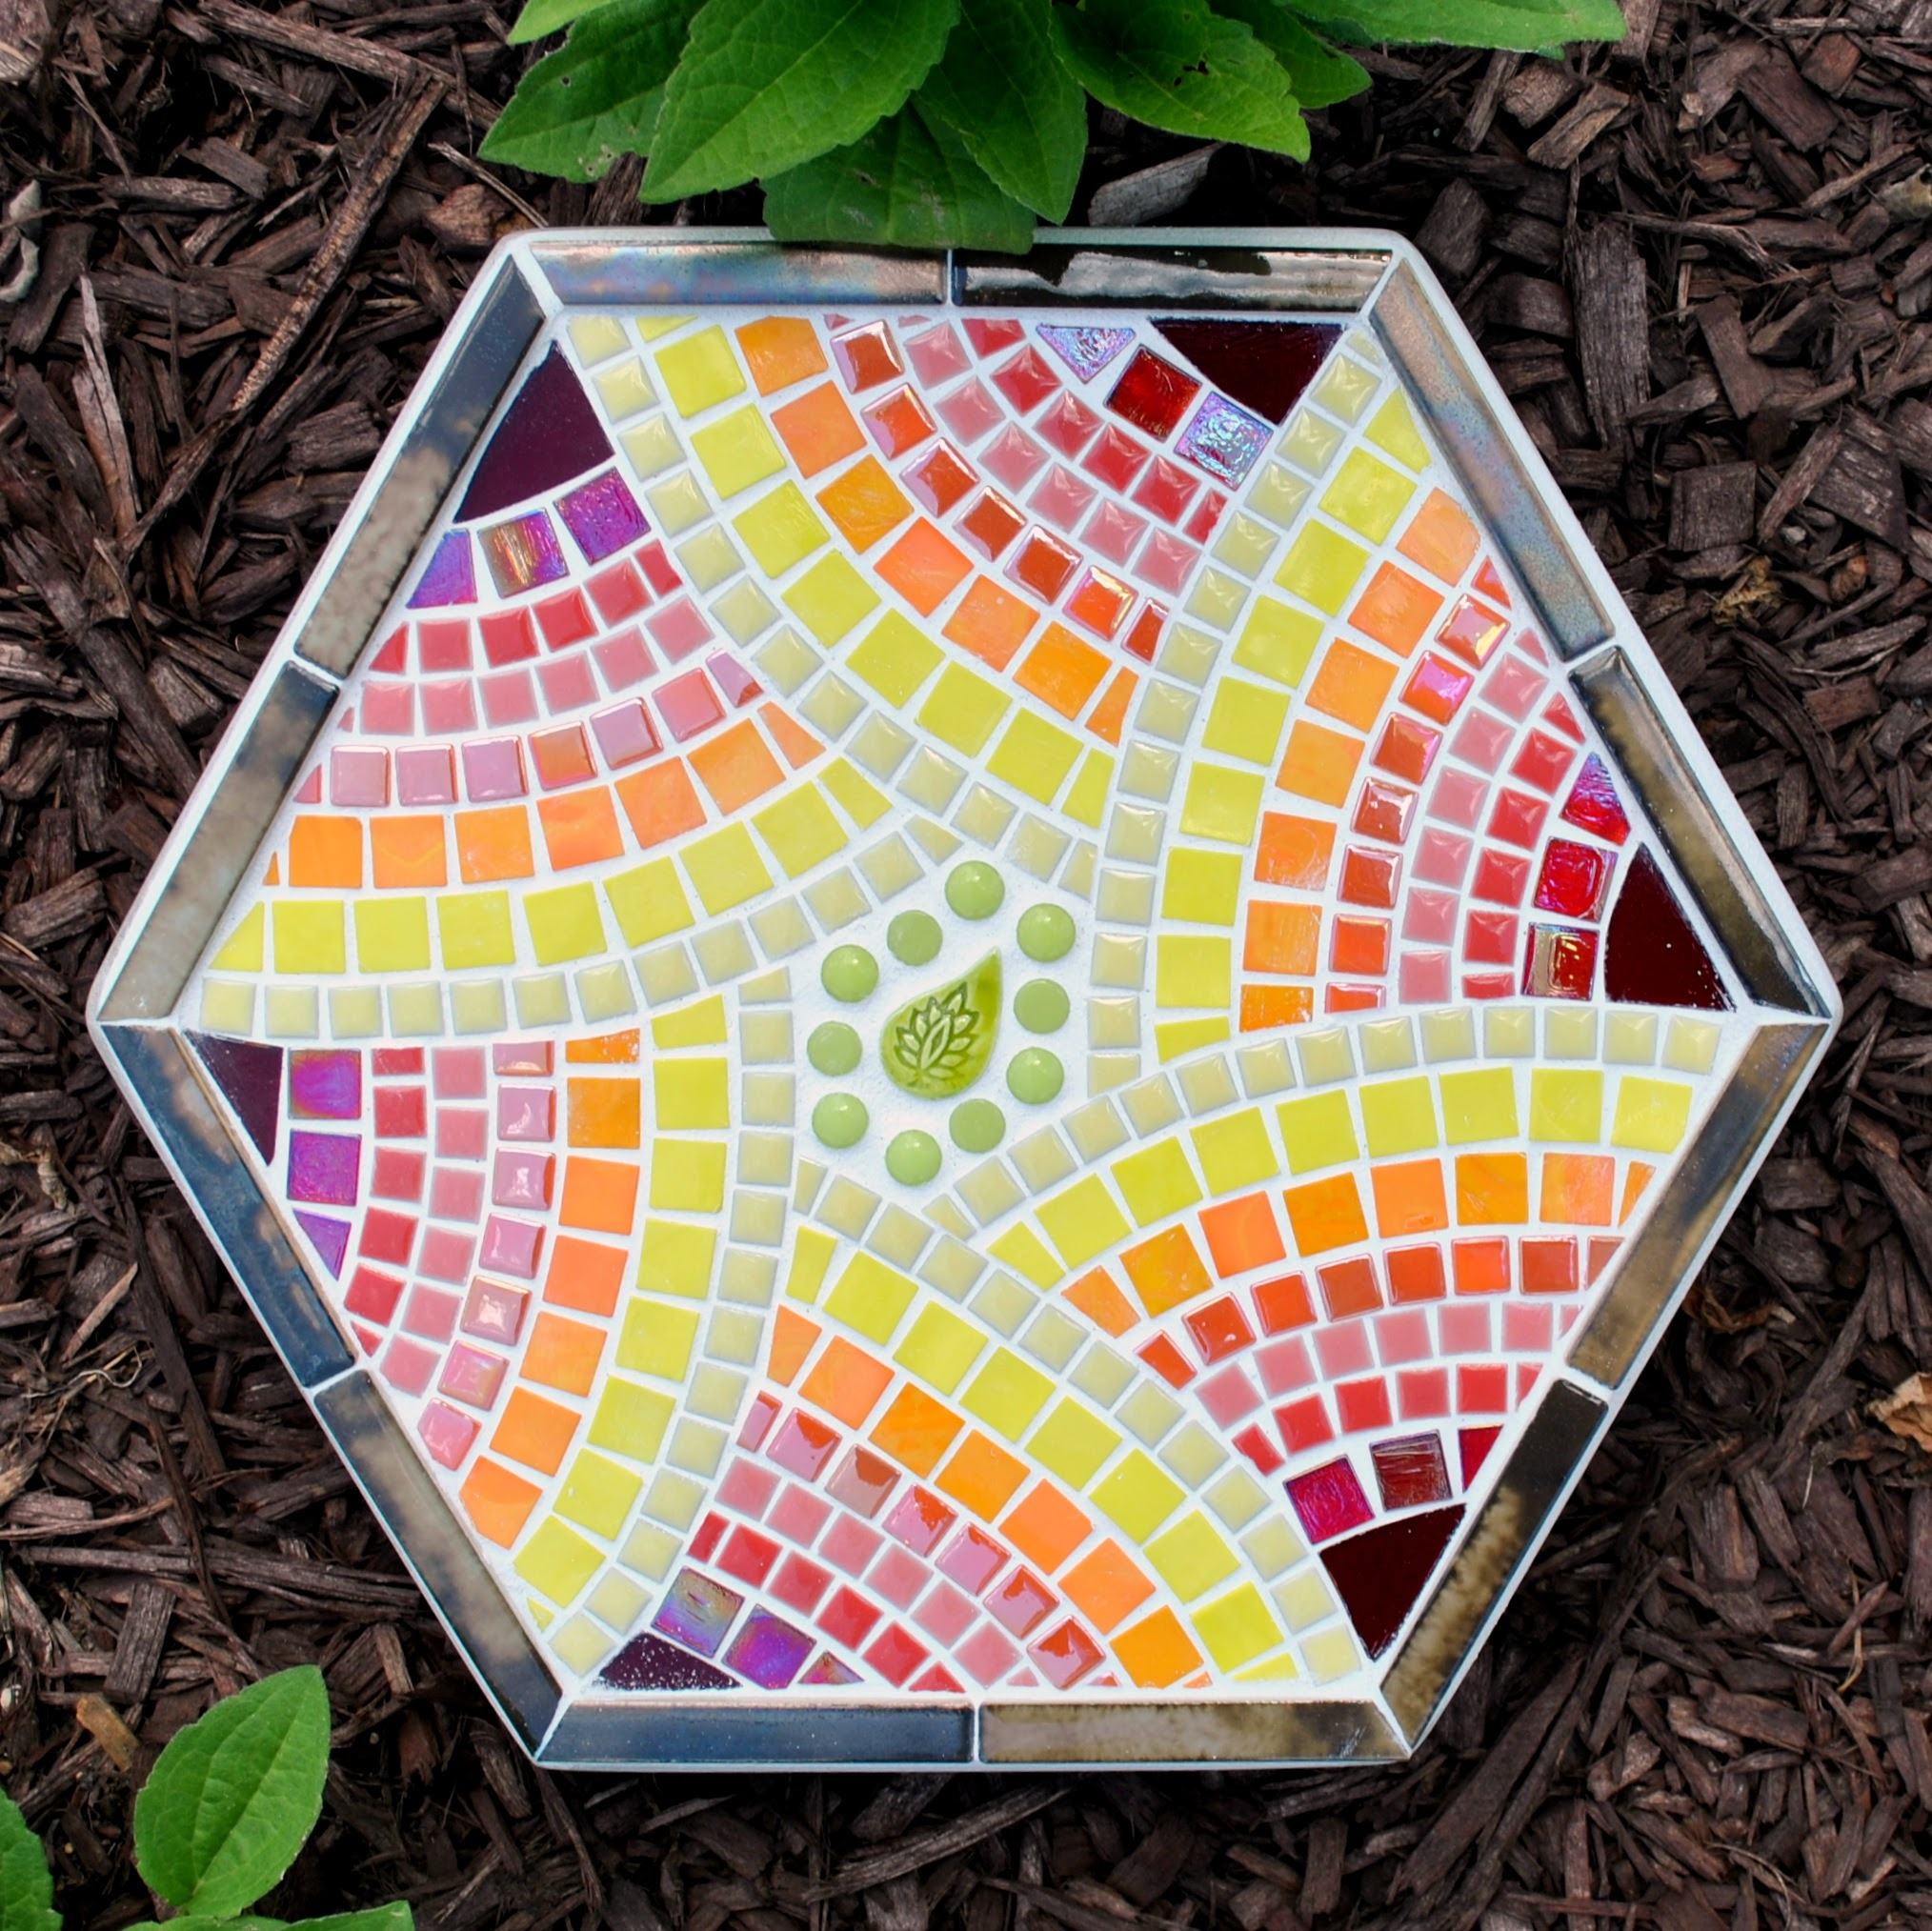 Flower Garden Hexagonal Stepping Stone